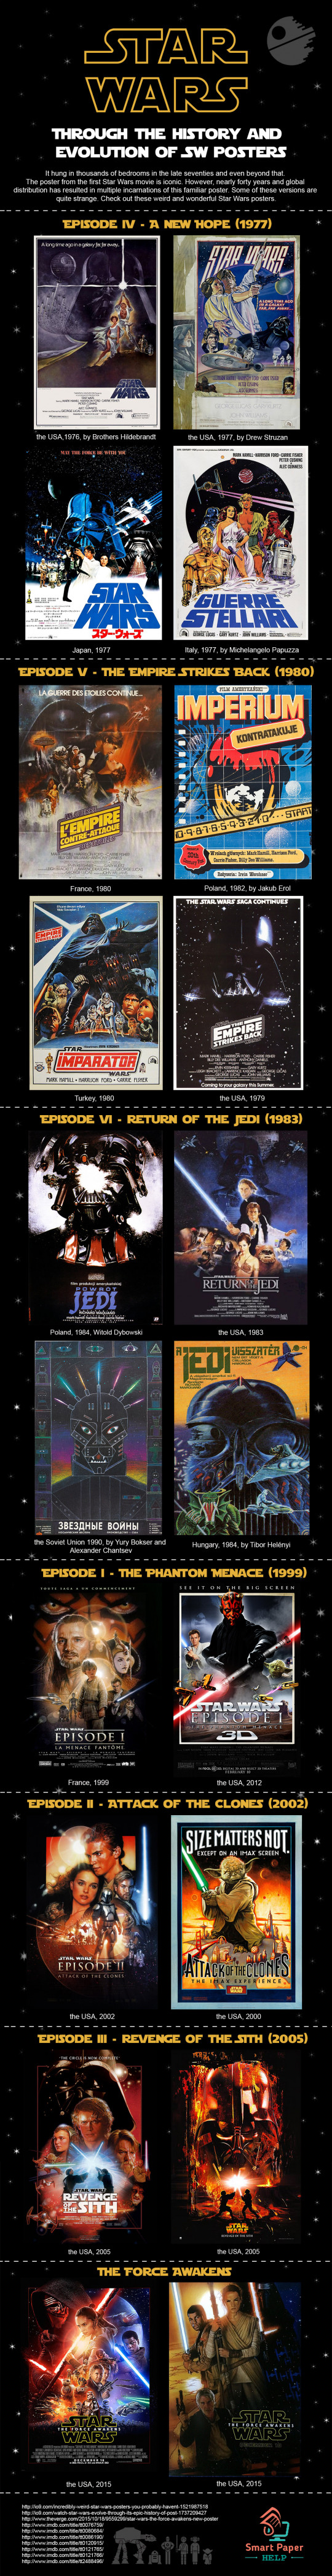 Star Wars: Through the Evolution of Posters